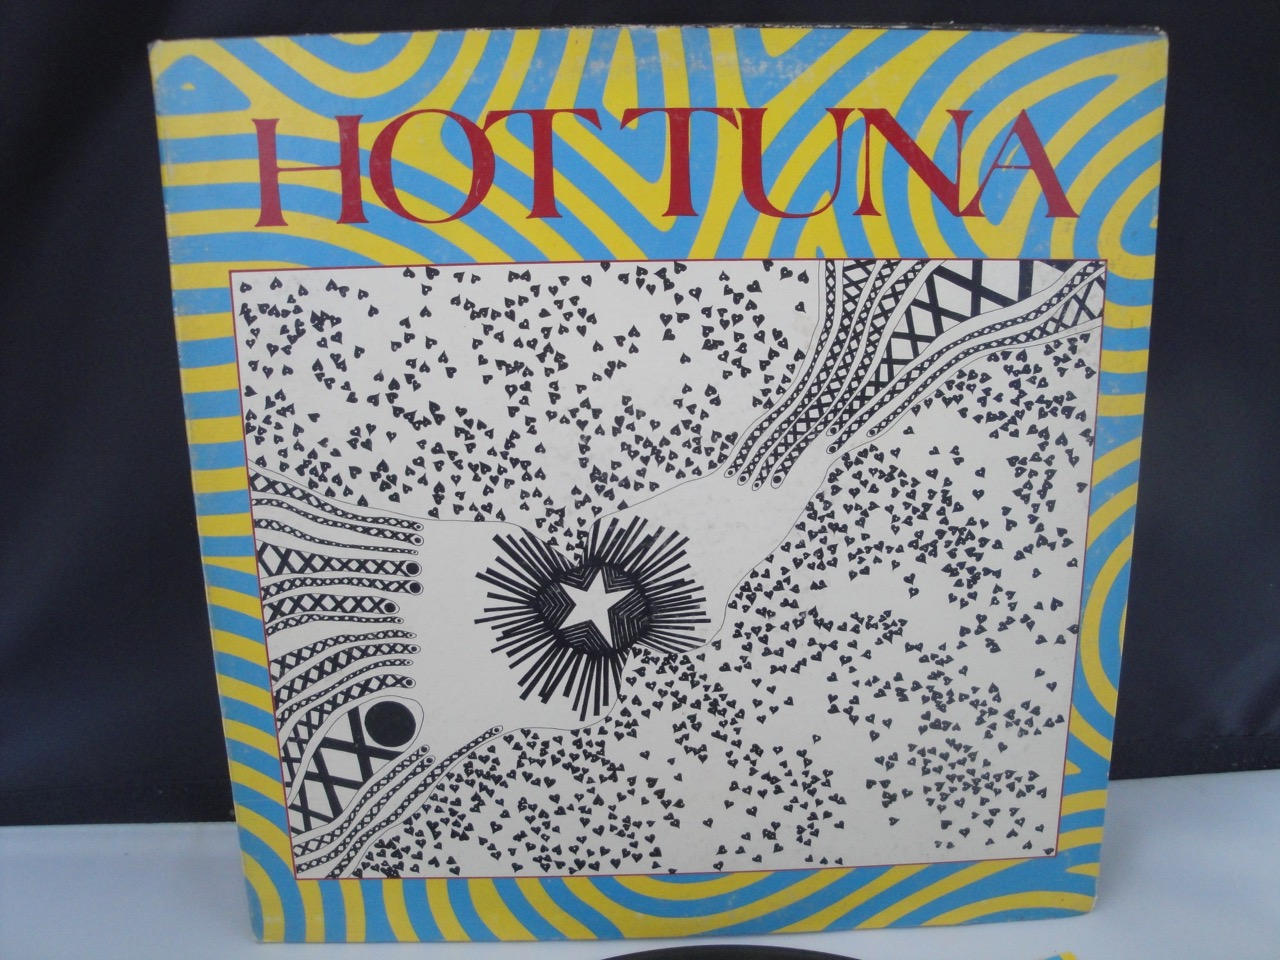 Hot Tuna - First Pull Up, Then Pull Down - 1971, Gatefold, Vinyl LP